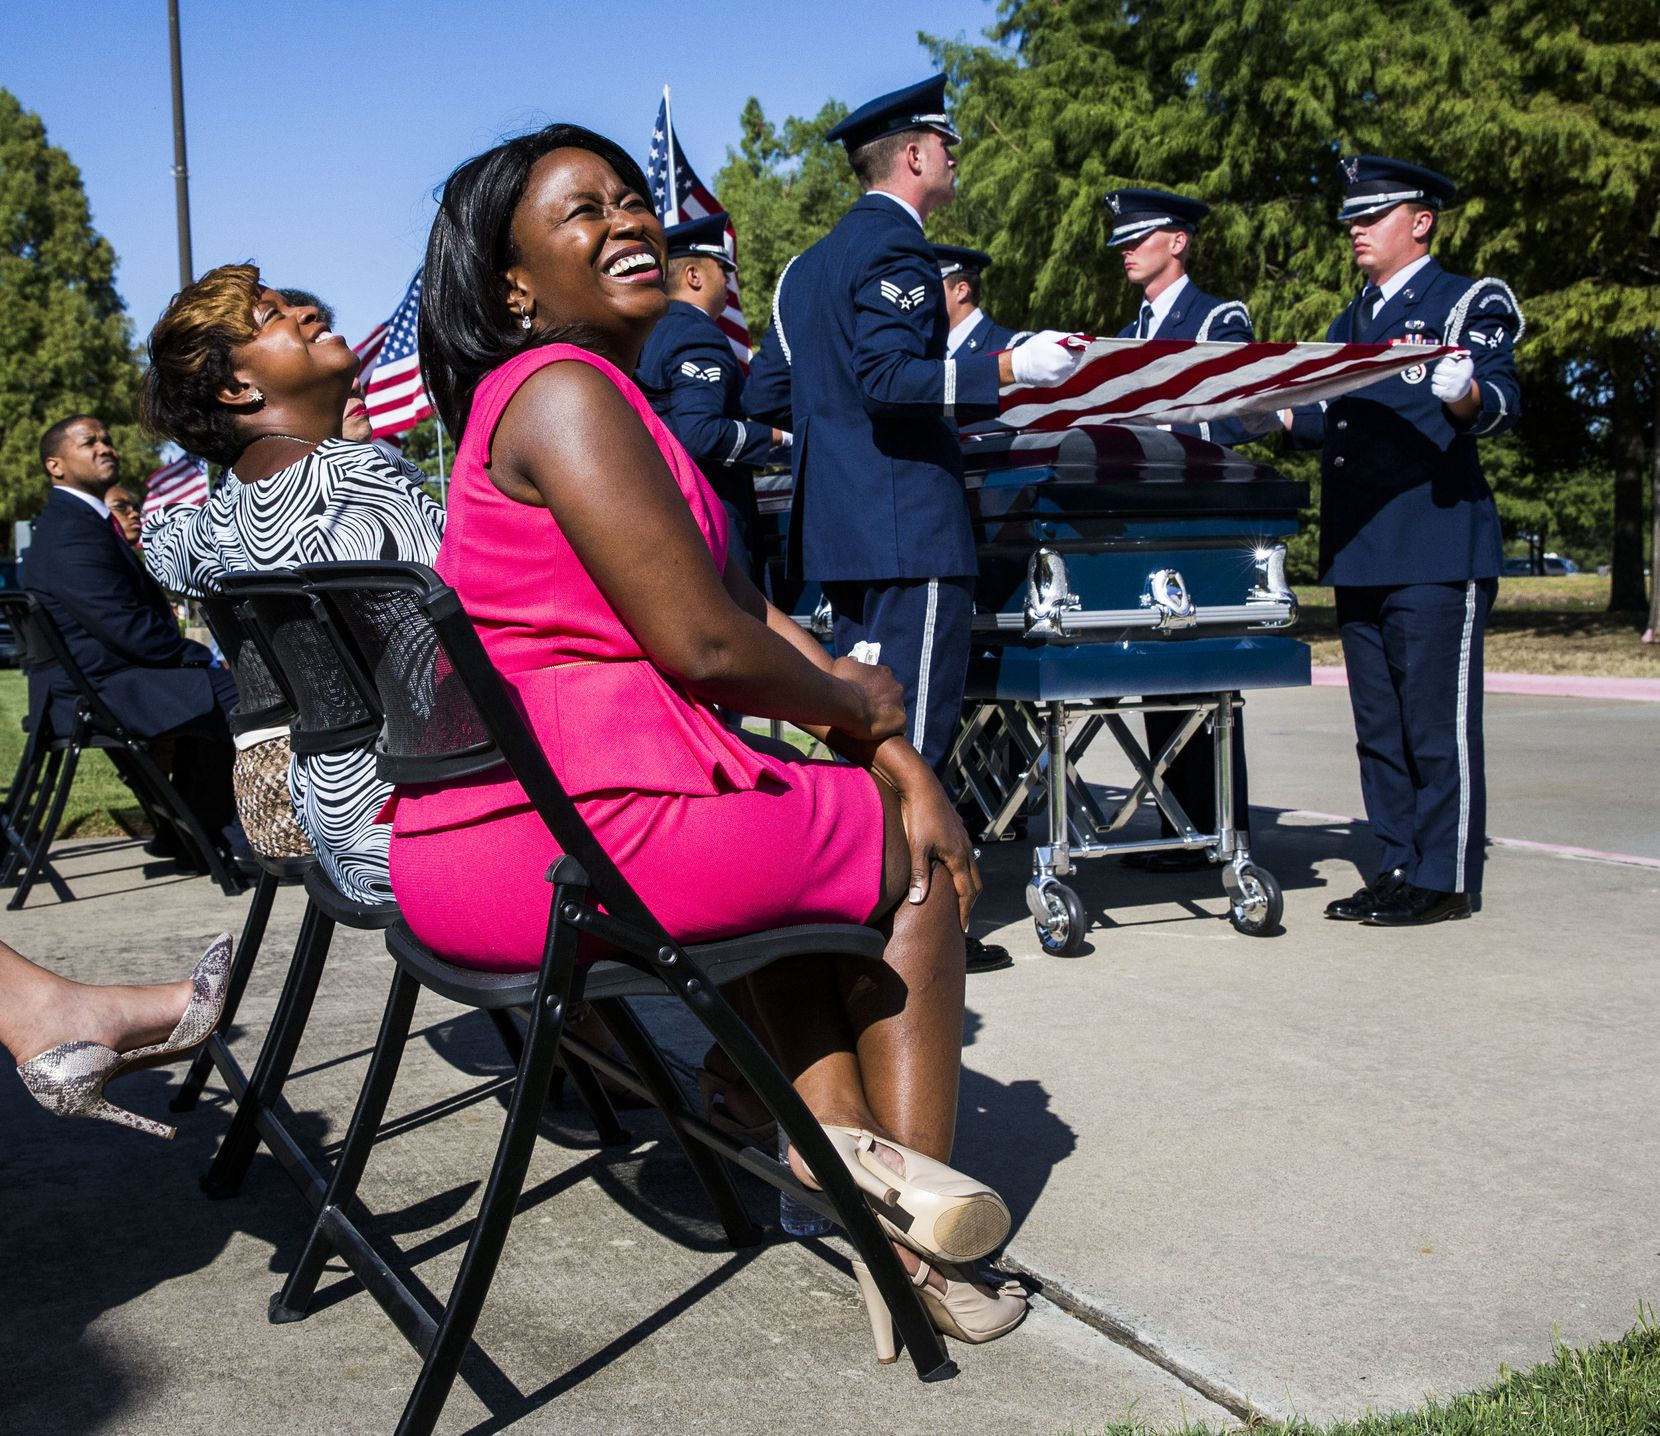 Gai Spann, left, and Dr. Carla Spann Lopez, center, smile as military planes fly overhead during funeral services for their father, retired Army Air Corps 1st Lieutenant Calvin Spann, on Saturday, September 12, 2015 at Covenant Church in Carrollton, Texas.  Spann was an original Tuskegee Airman and fighter pilot with the 100th Fighter Squadron of the 332nd Fighter Group.  He served during World War II, when he flew 26 combat missions. (Ashley Landis/The Dallas Morning News)